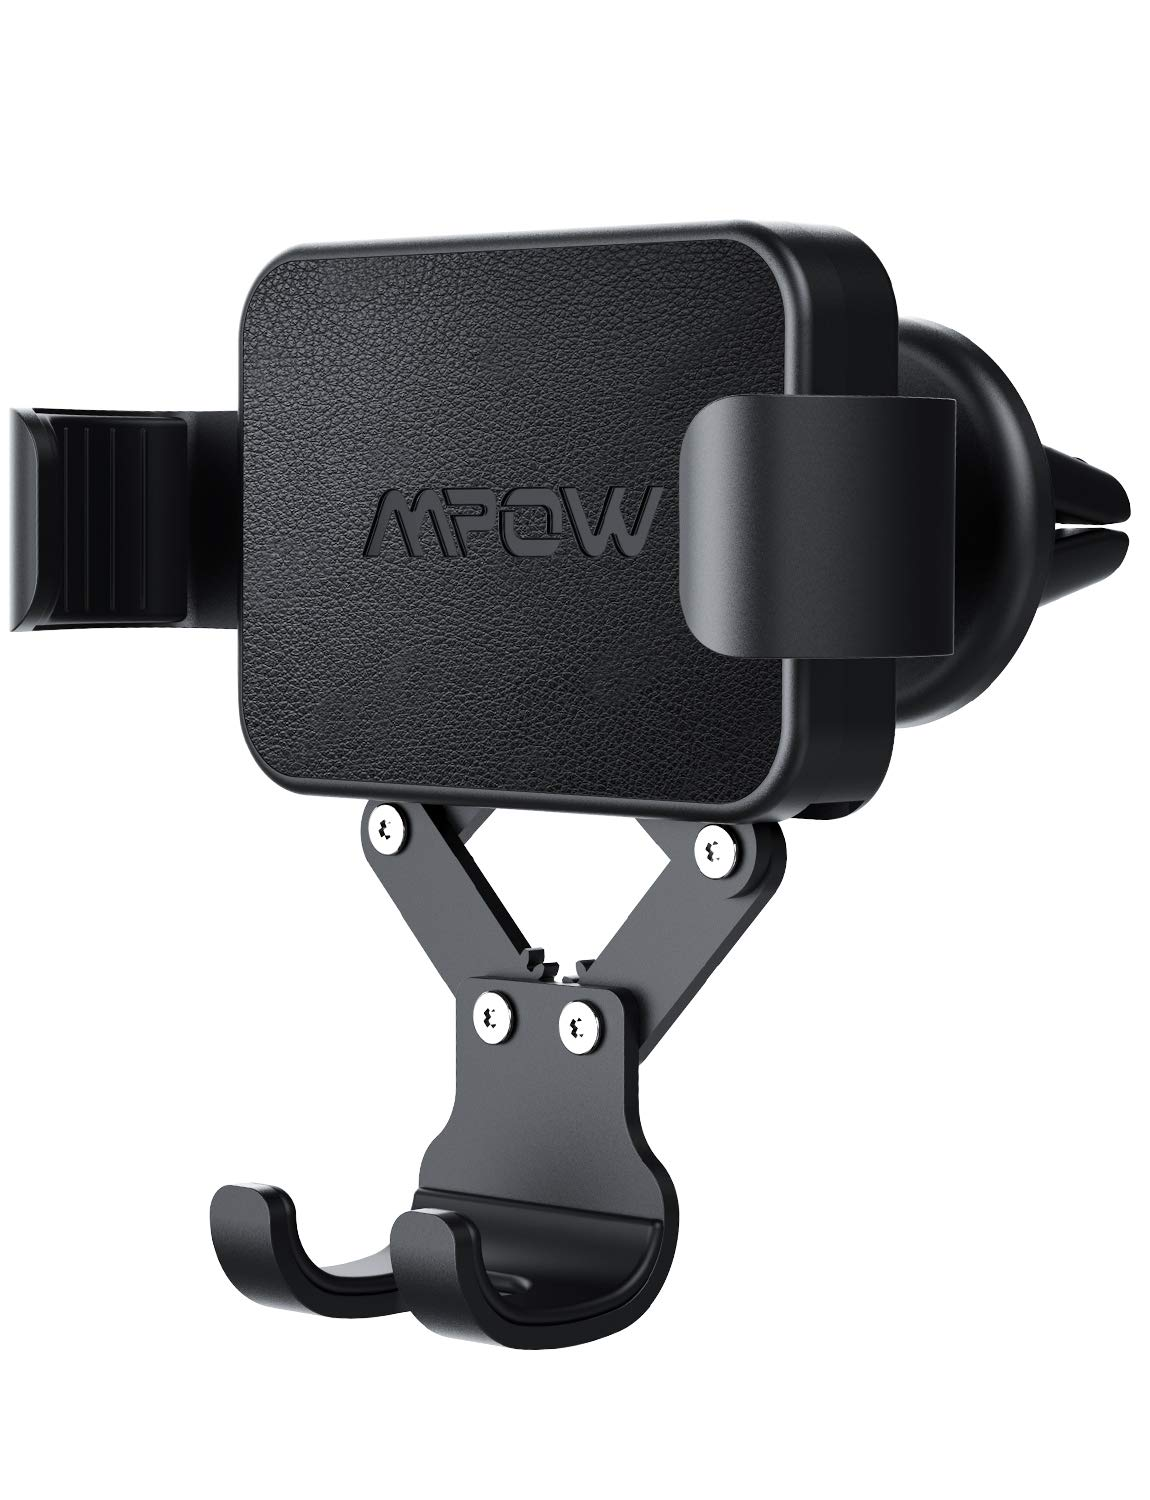 Samsung S10+//S10//S8+//Note 9 One-Hand Operation Mpow Gravity Auto-Clamping Car Mount Auto-Lock and Auto-Release Google Nexus Compatible iPhone Xs//XR//X//8 Plus Case Friendly Huawei and More